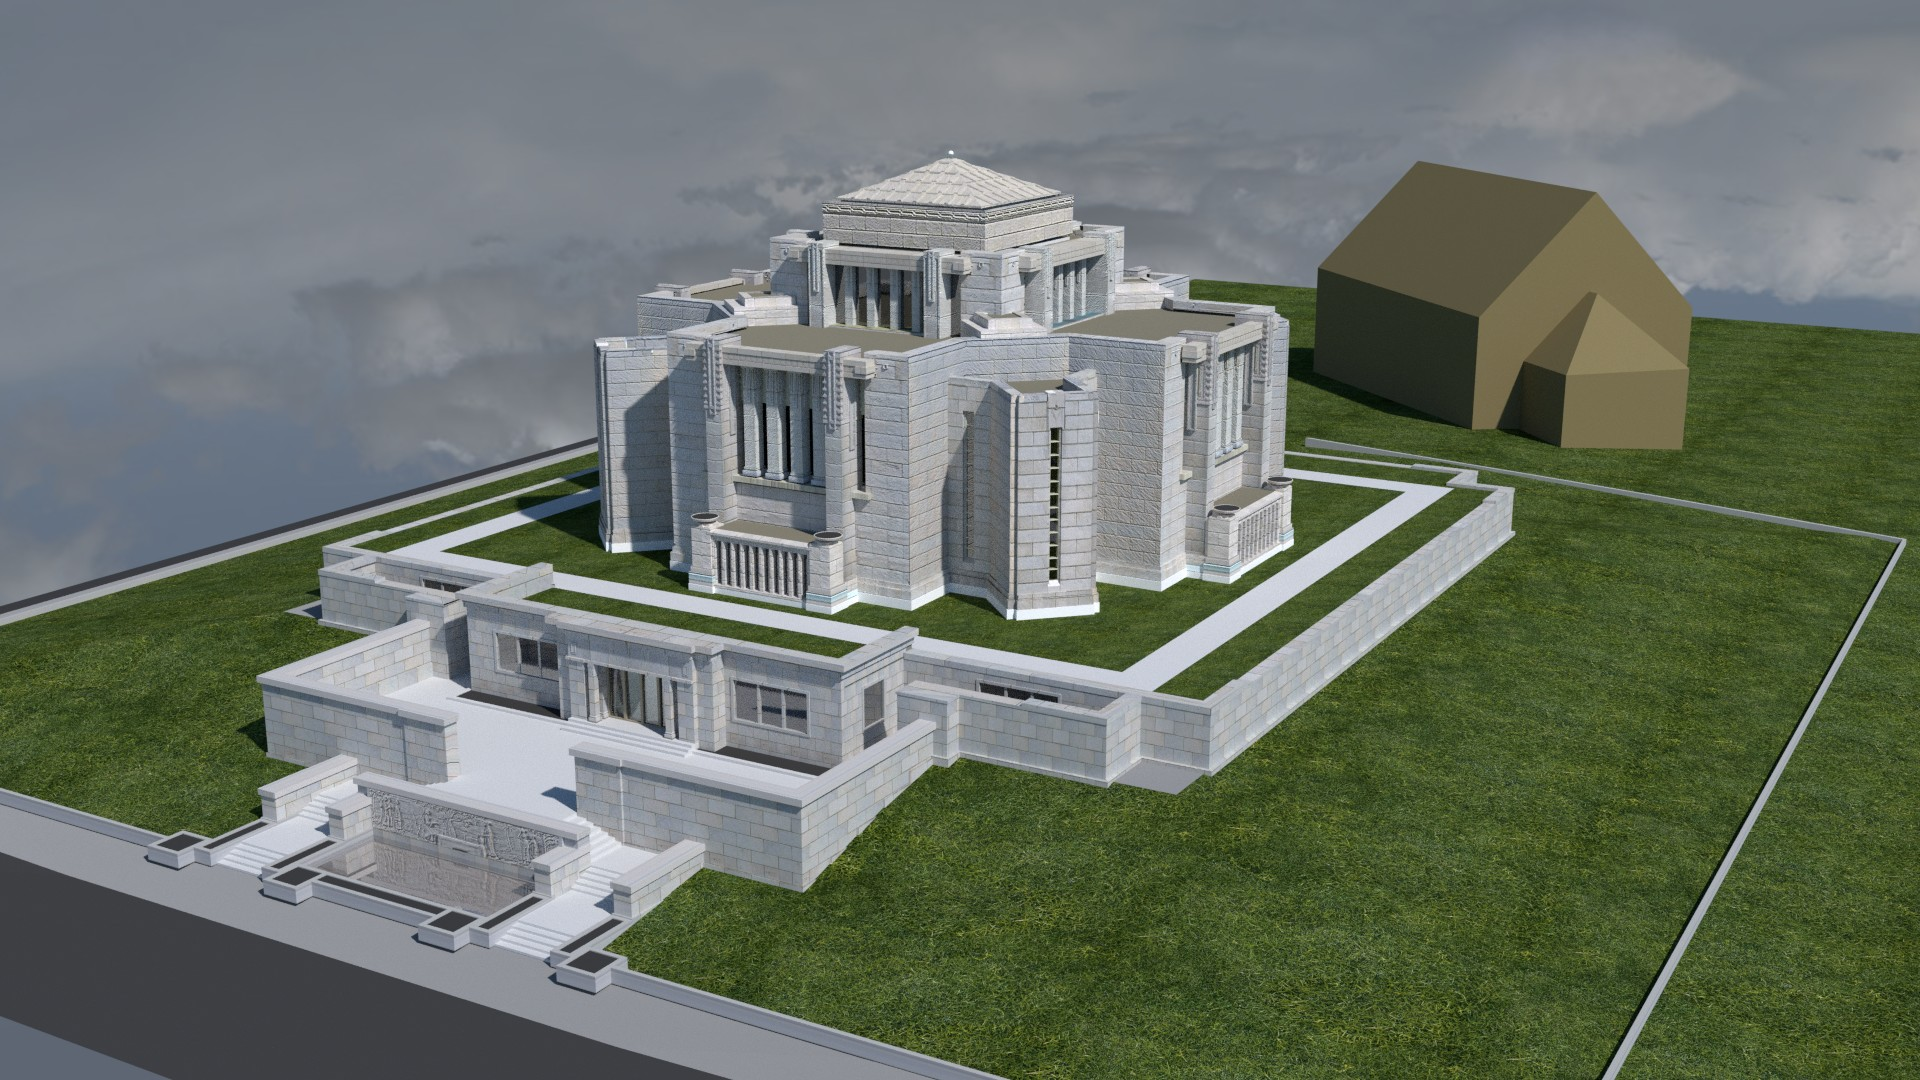 Cardston Alberta Temple image1923